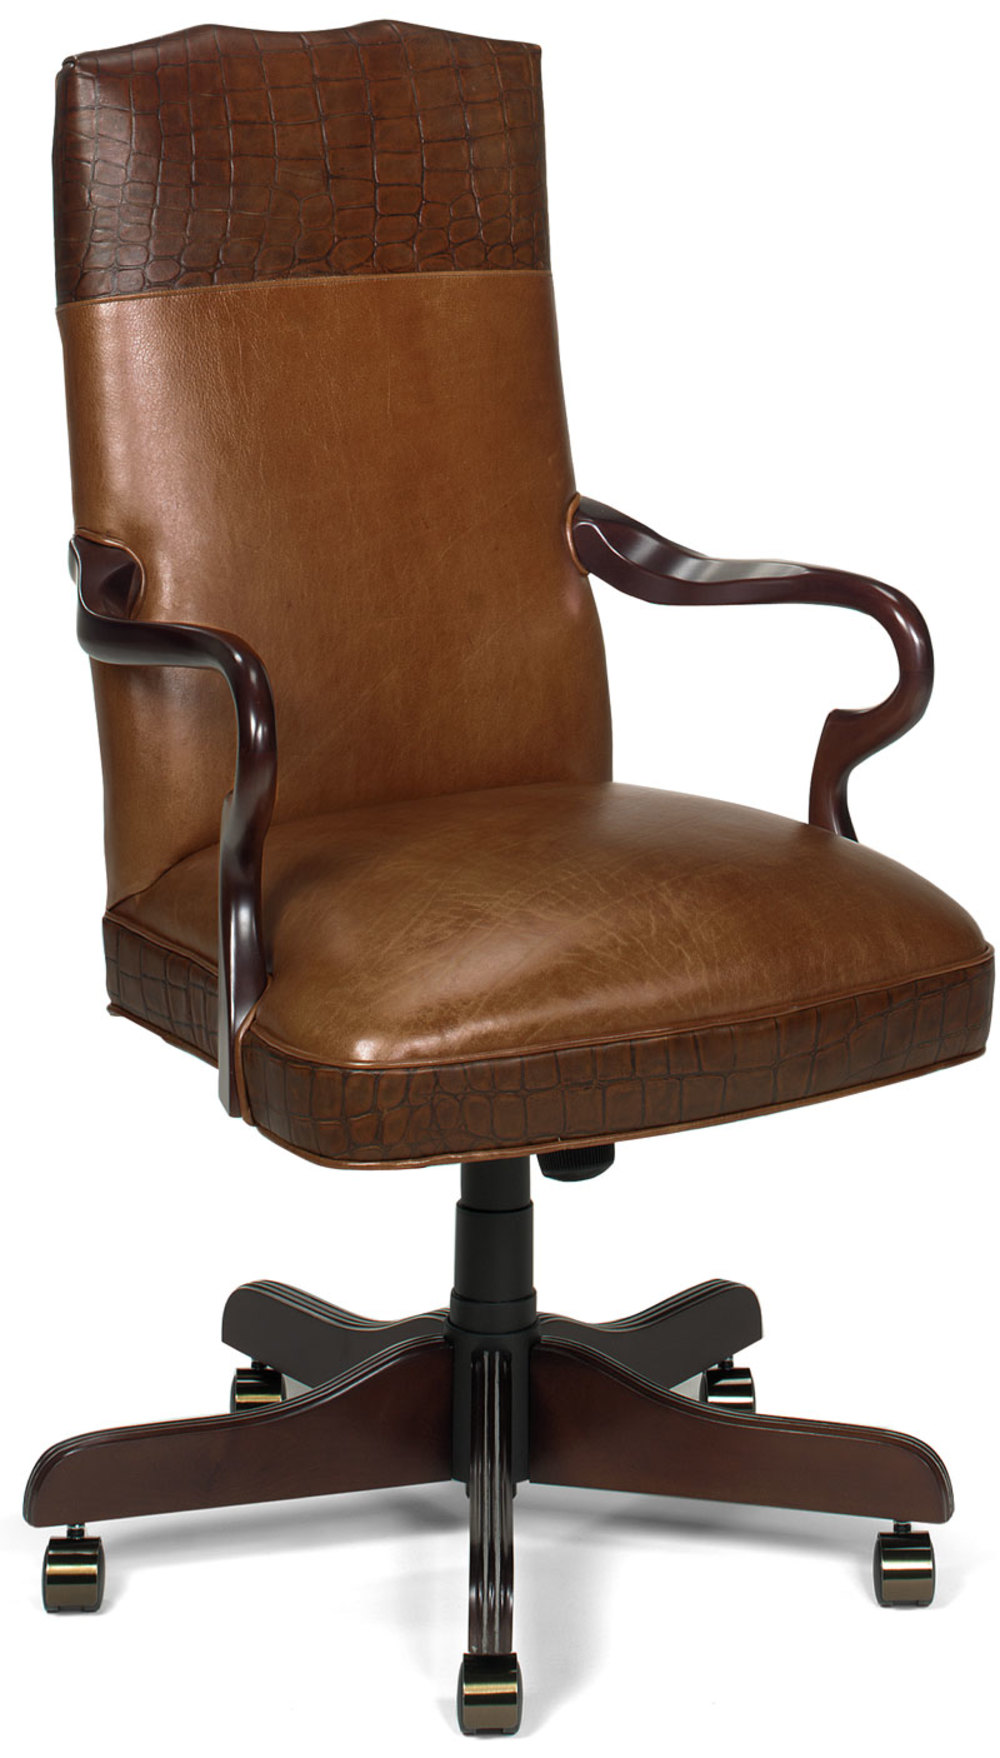 Parker Southern - Maxwell Tilt Swivel Chair